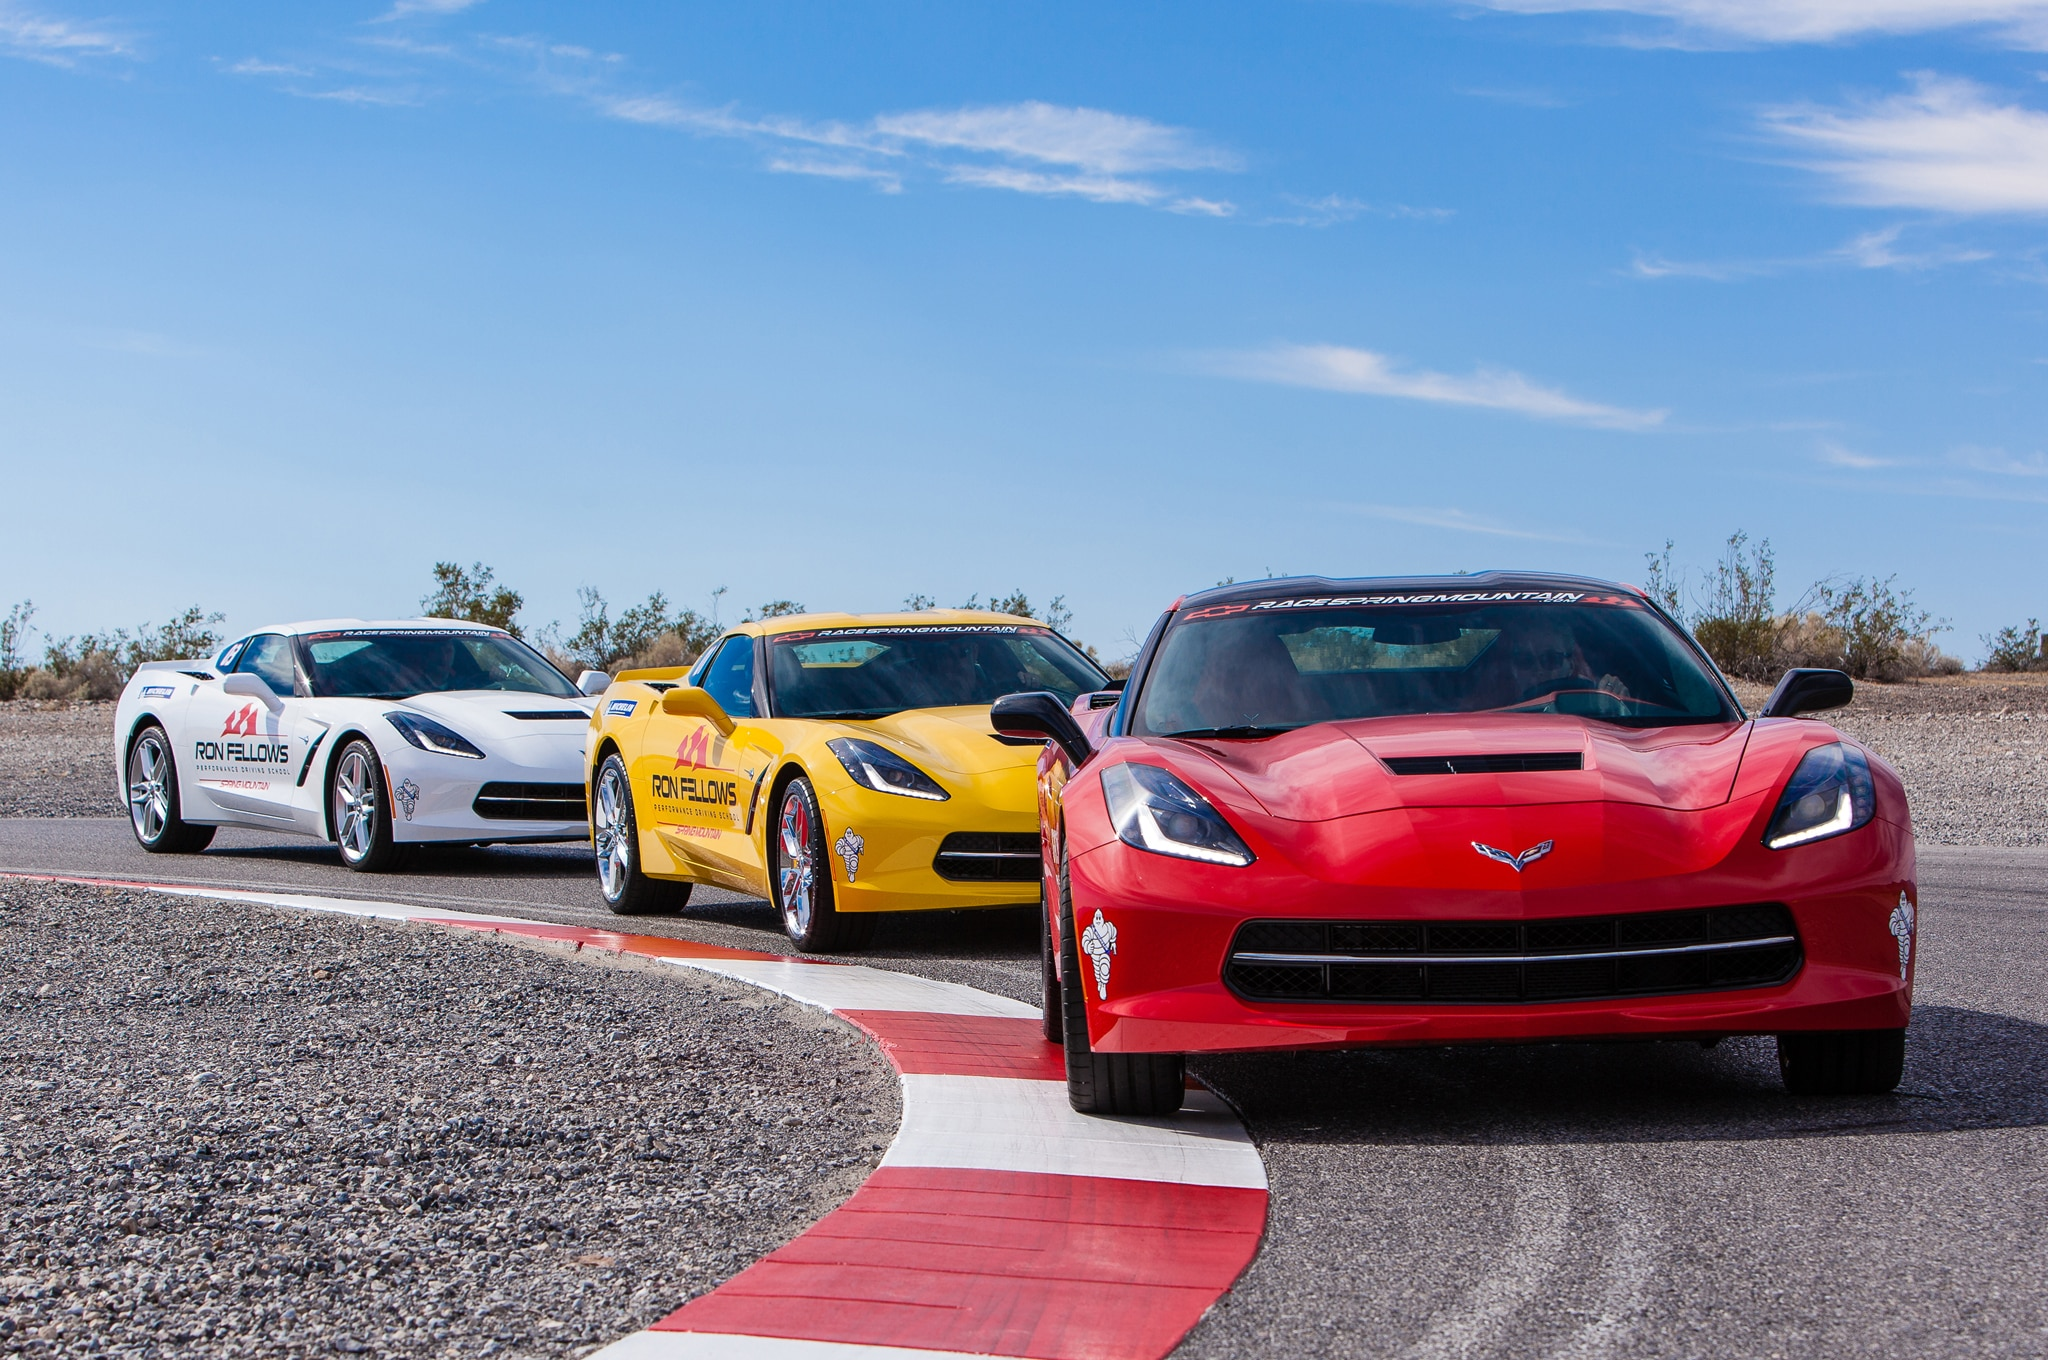 2014 Chevrolet Corvette Stingray Ron Fellows Driving School Trio1